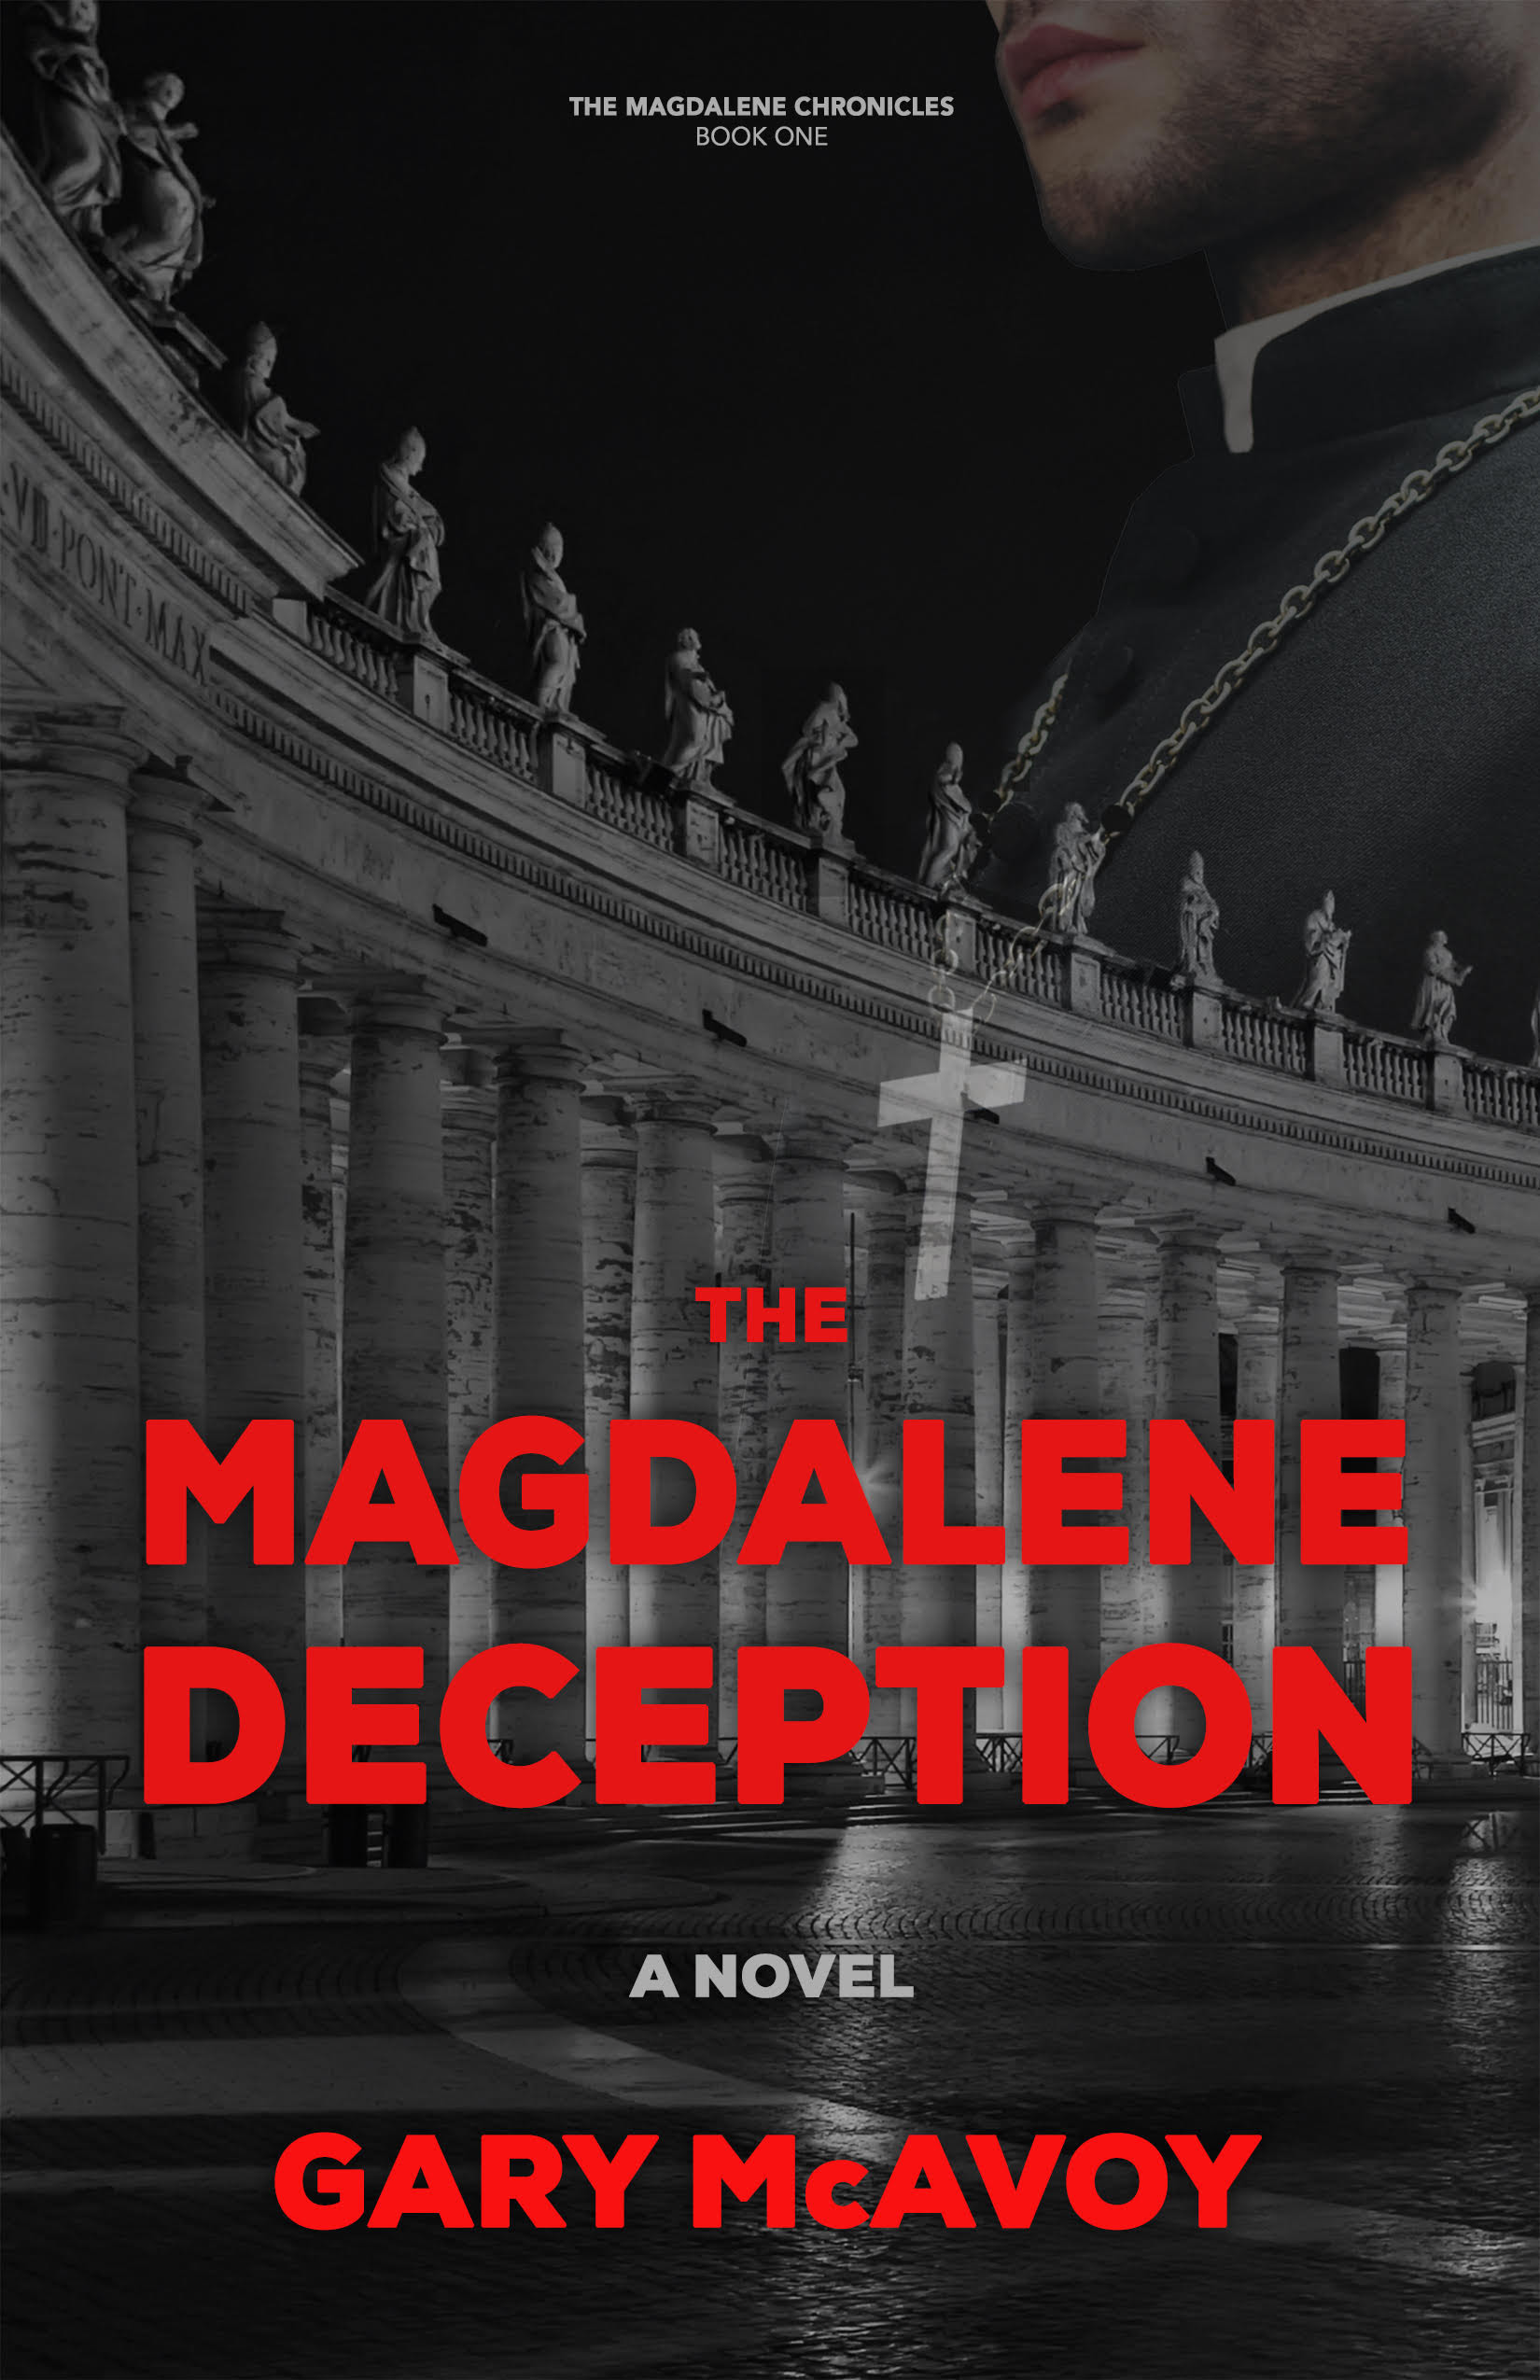 The Magdalene Deception by Gary McAvoy